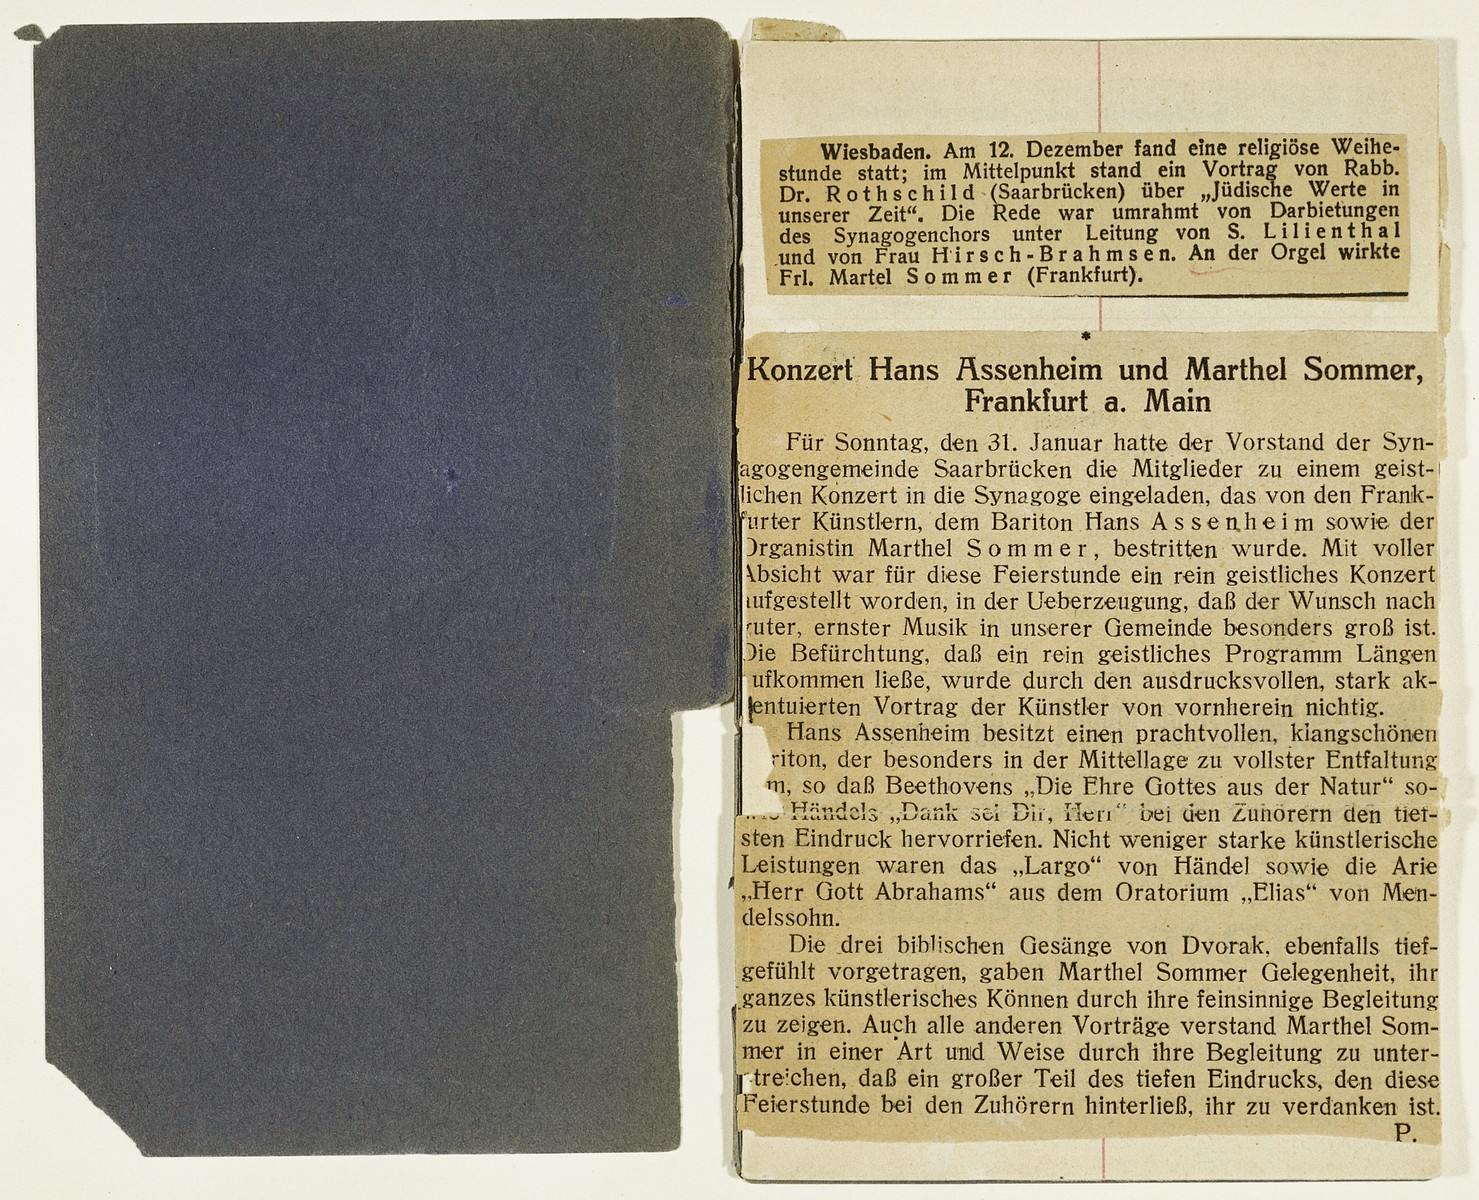 One page of a booklet containing newspaper clippings of concert reviews kept by Marthel Sommer, organist and pianist in the Juedischer Kulturbund [the Jewish Cultural Association] of Germany.